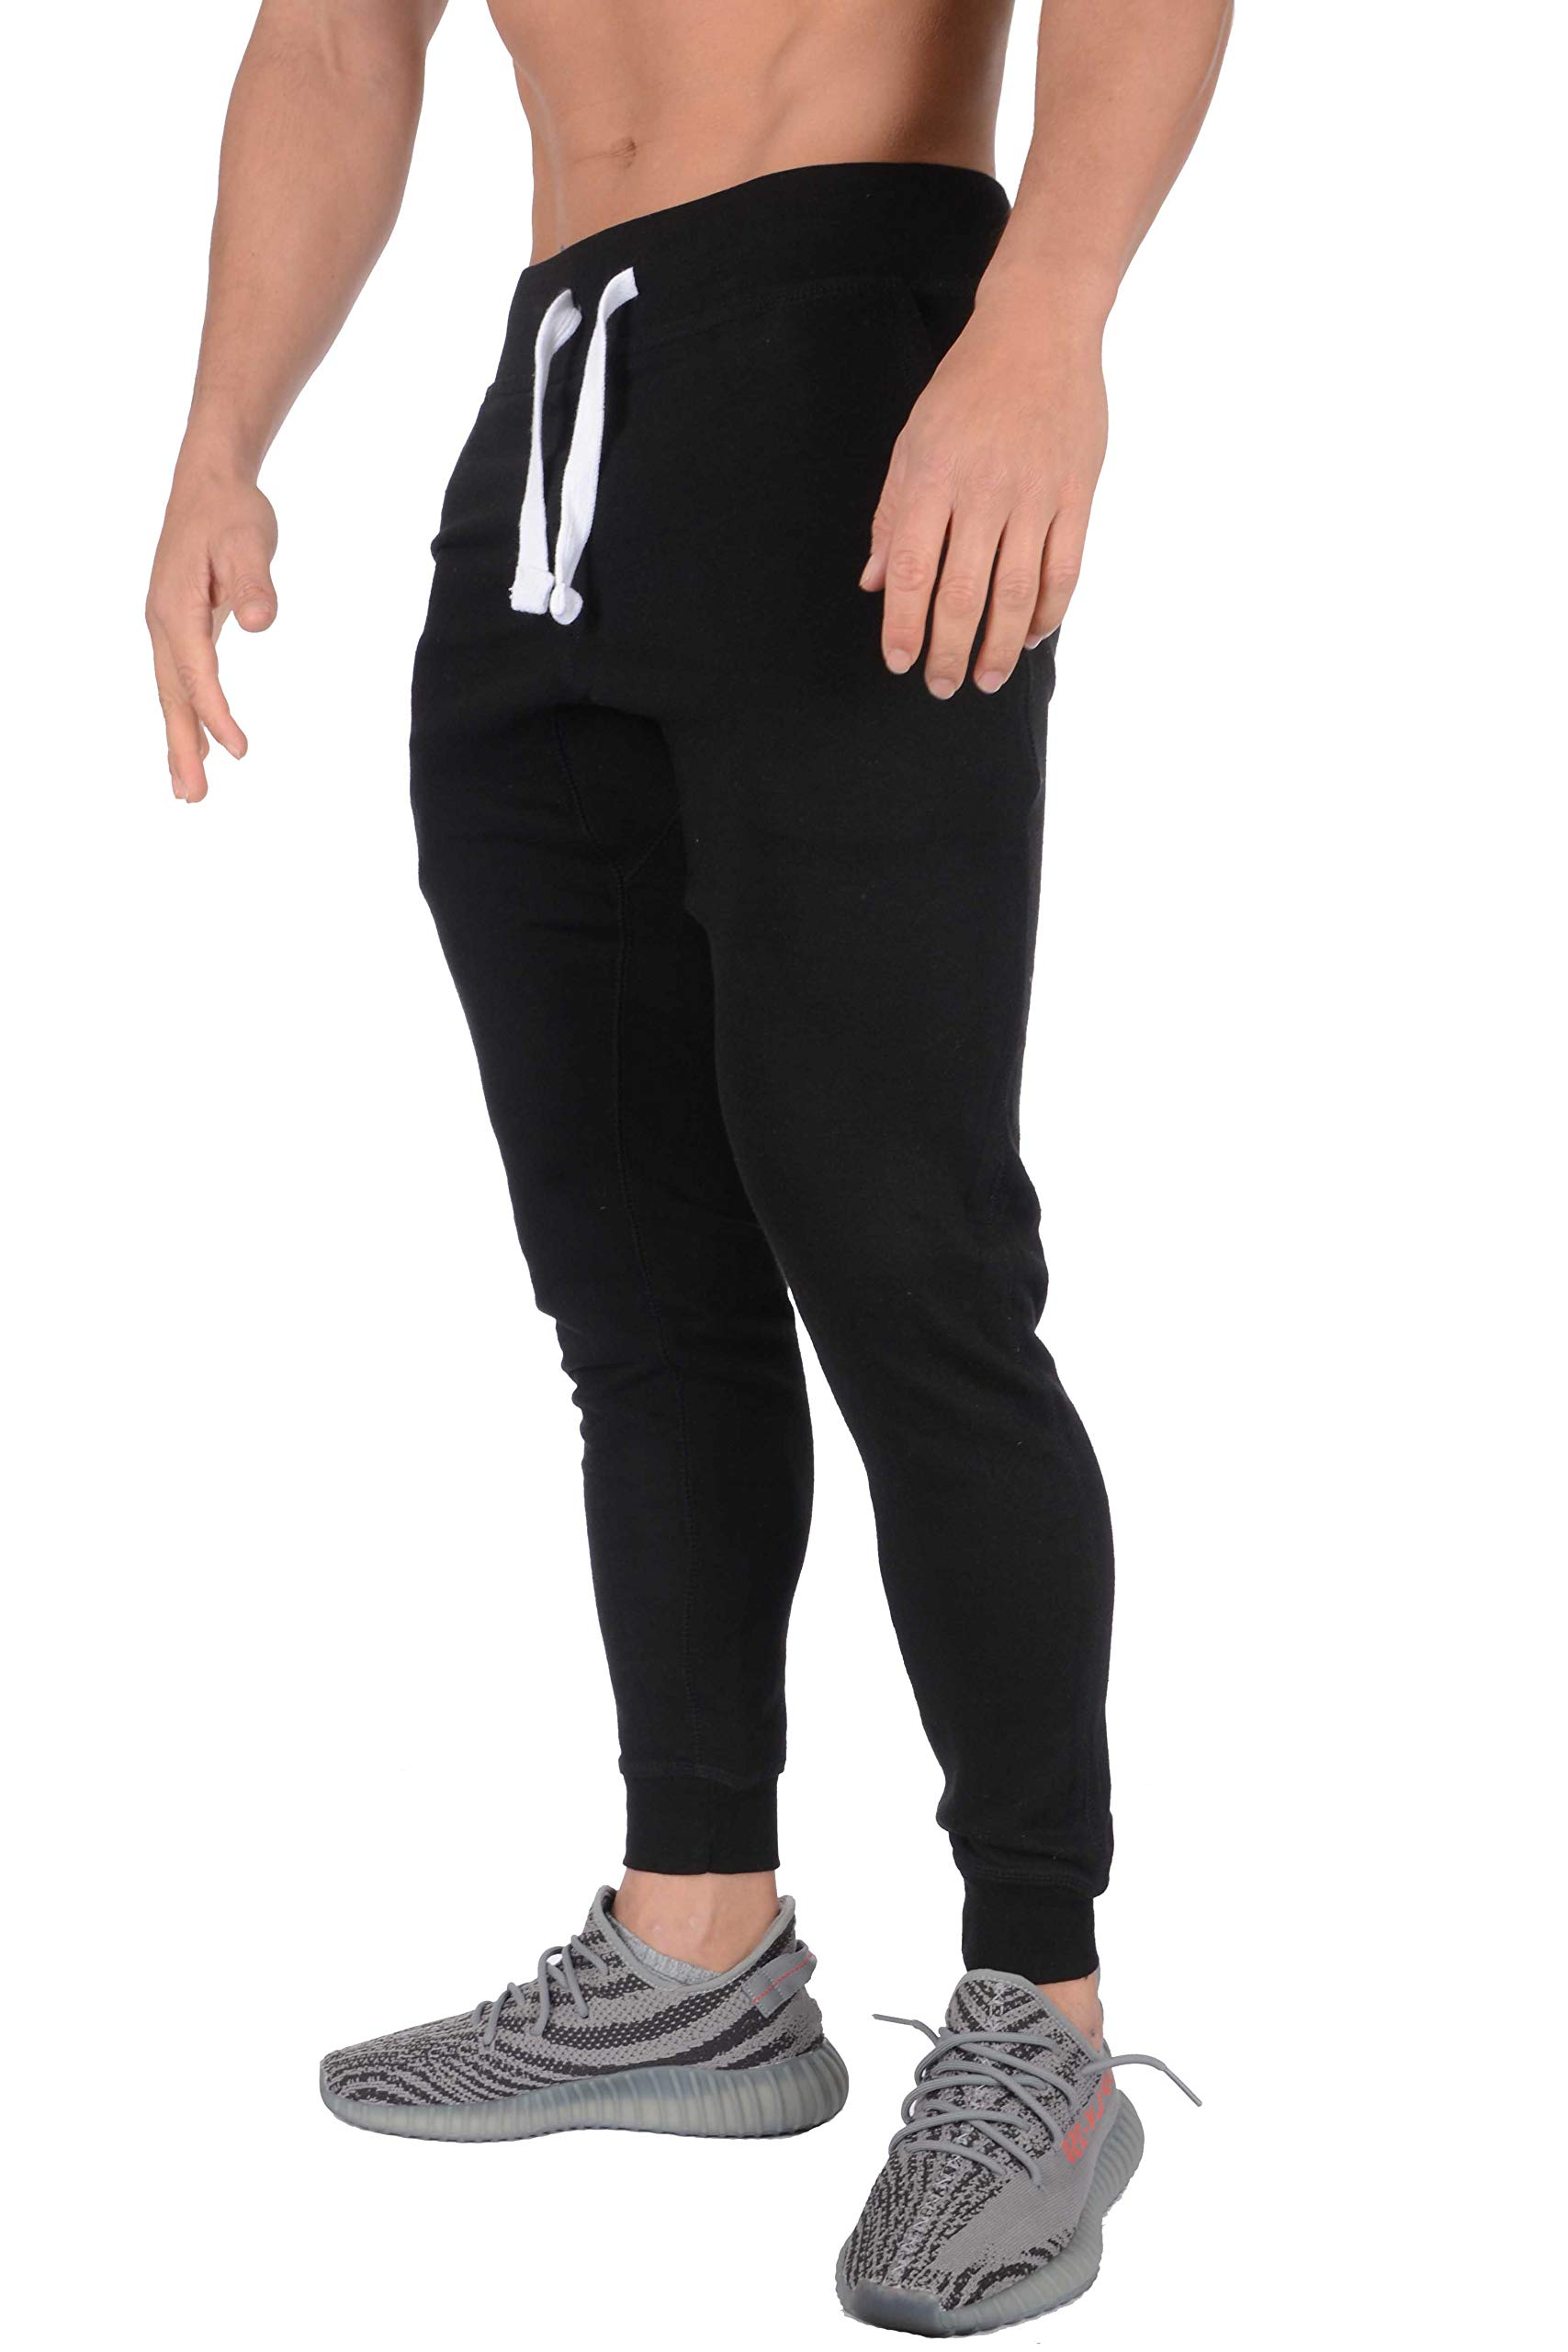 YoungLA Tapered Sweatpants Joggers Men Gym Training Workout 206